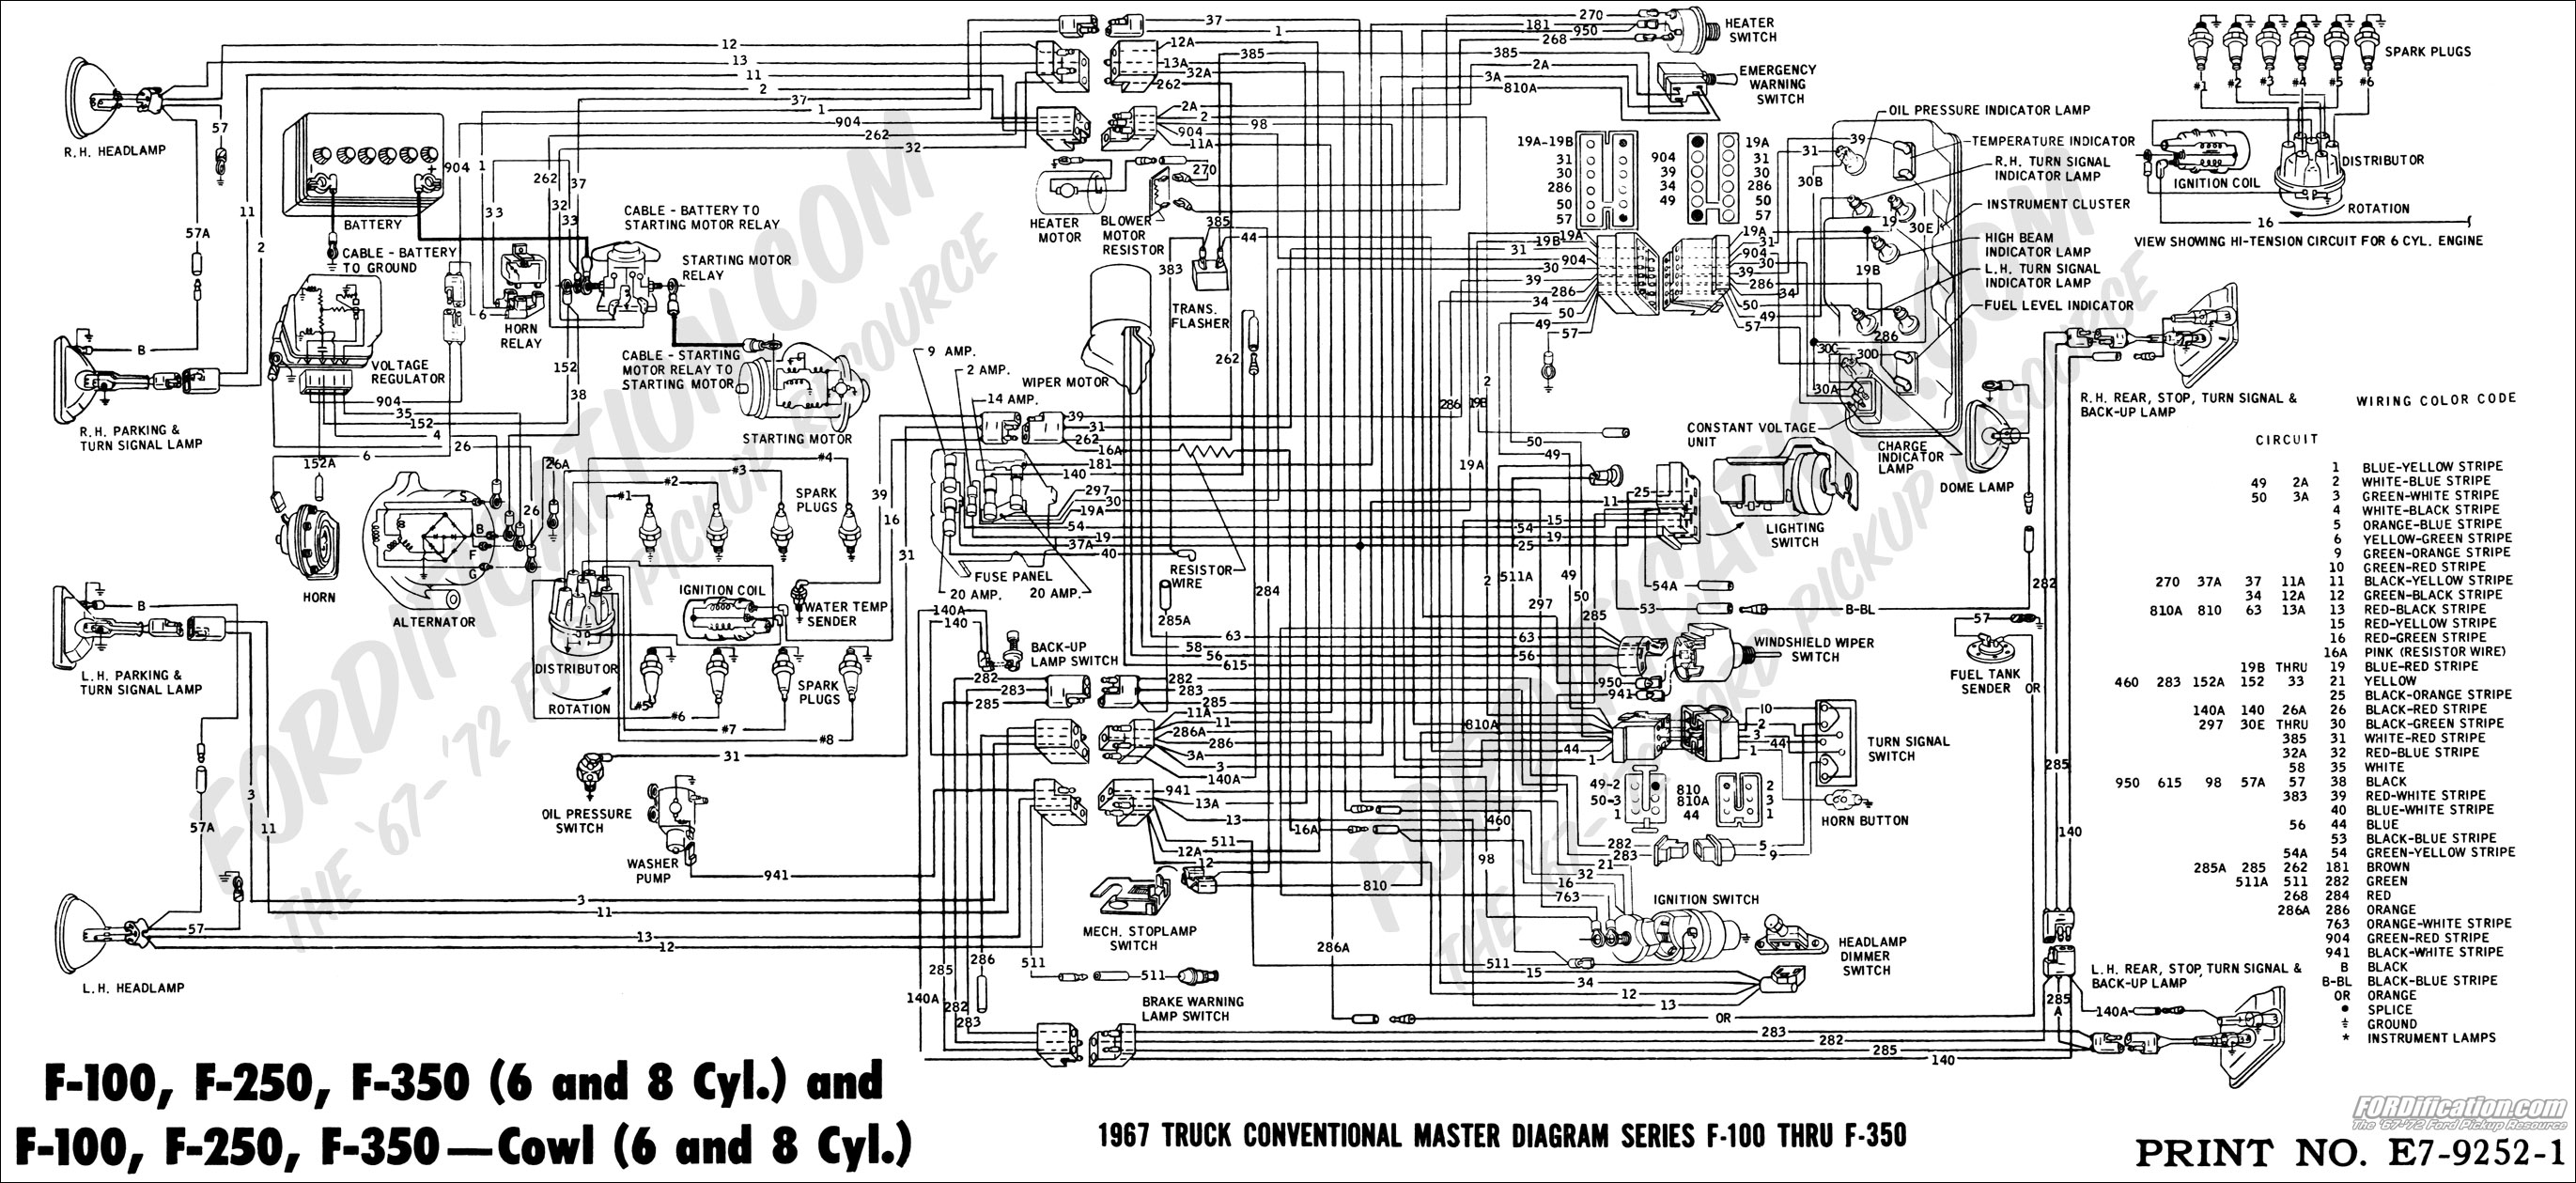 67masterdiagram ford truck technical drawings and schematics section h wiring 2001 ford f150 wiring diagram at bakdesigns.co